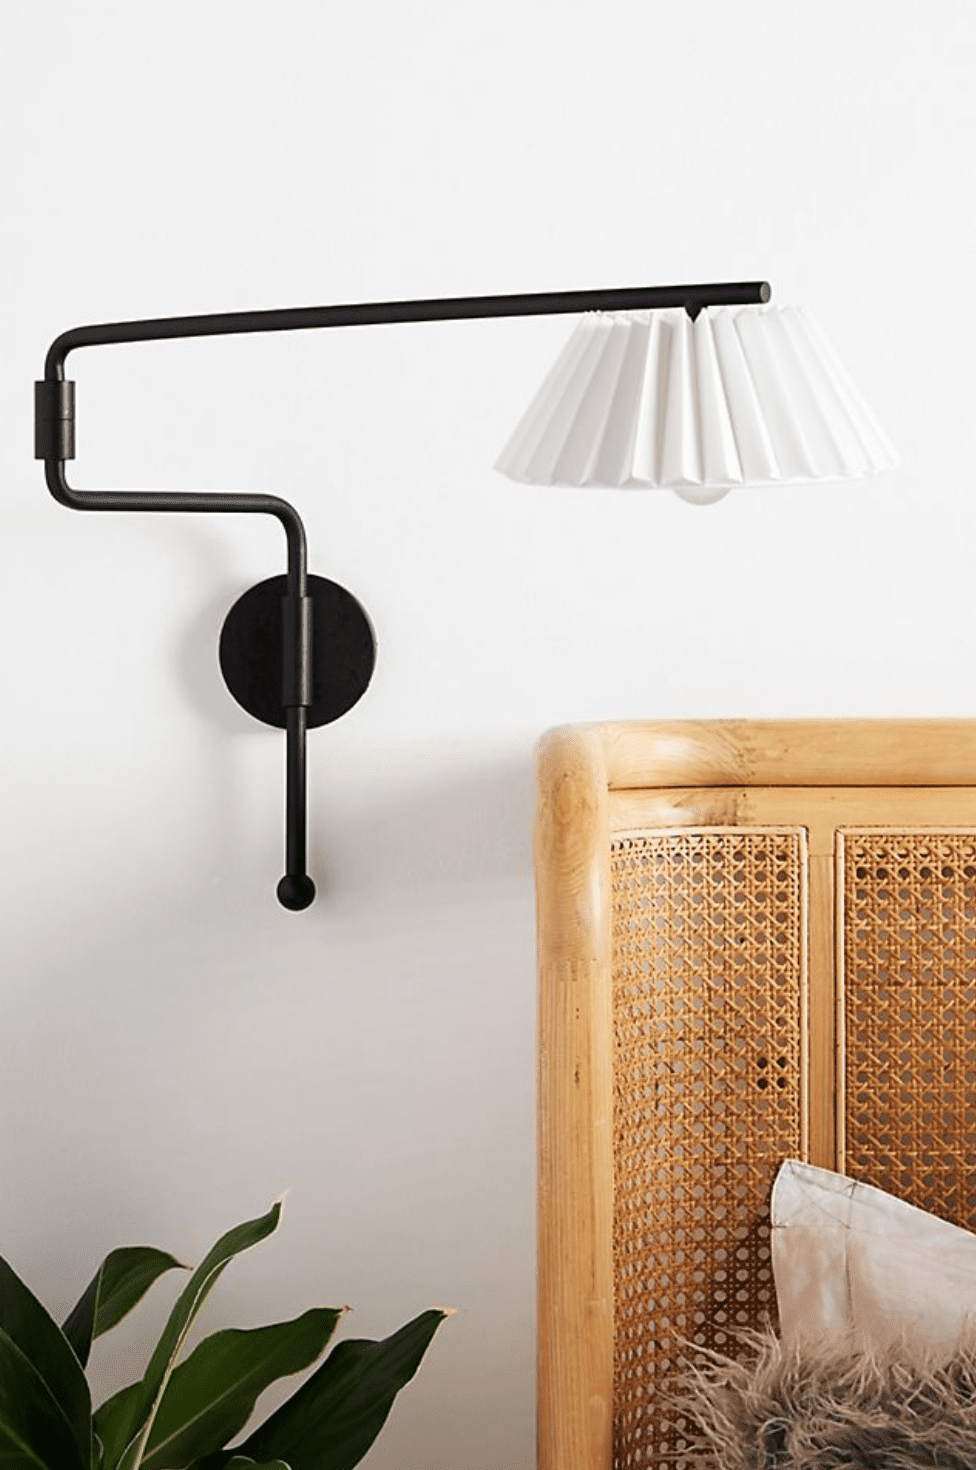 A wall-mounted sconce, currently for sale at Anthroplogie